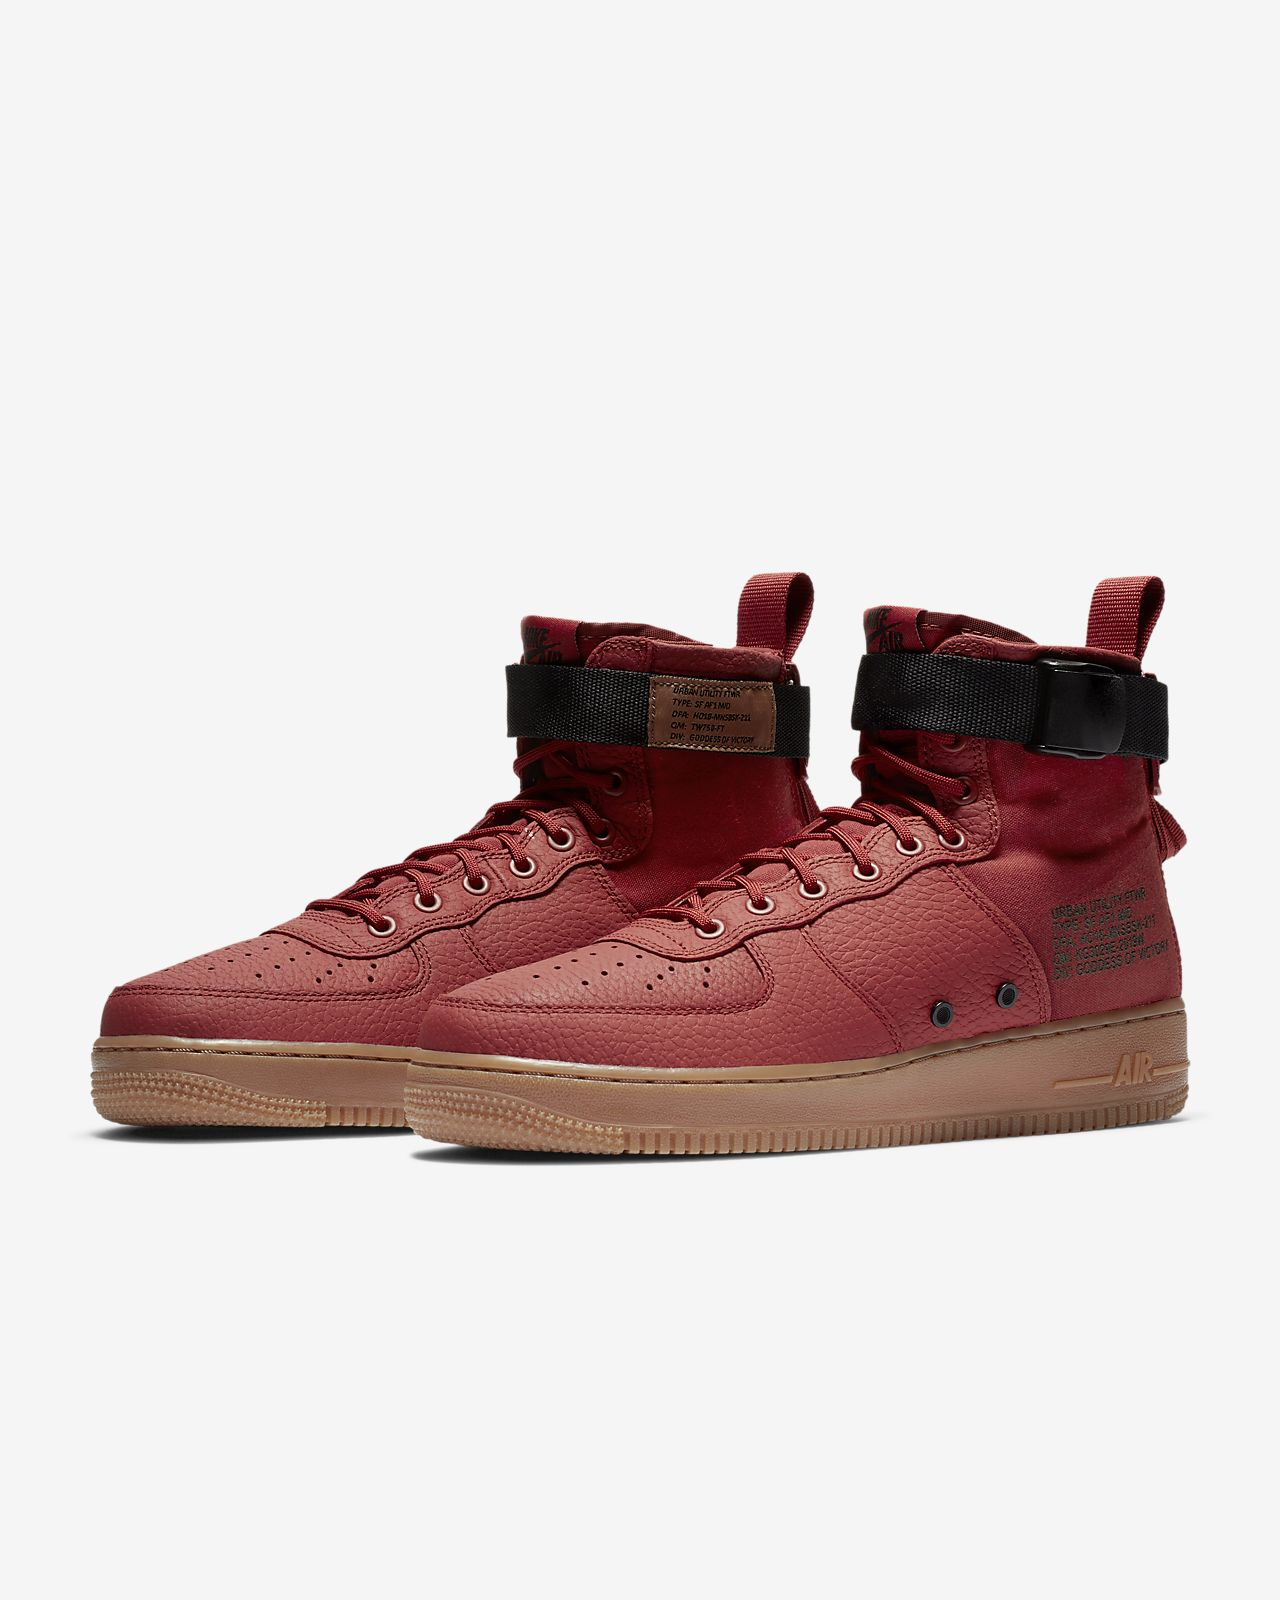 9f864f613d Nike SF Air Force 1 Mid Men's Shoe. Nike.com